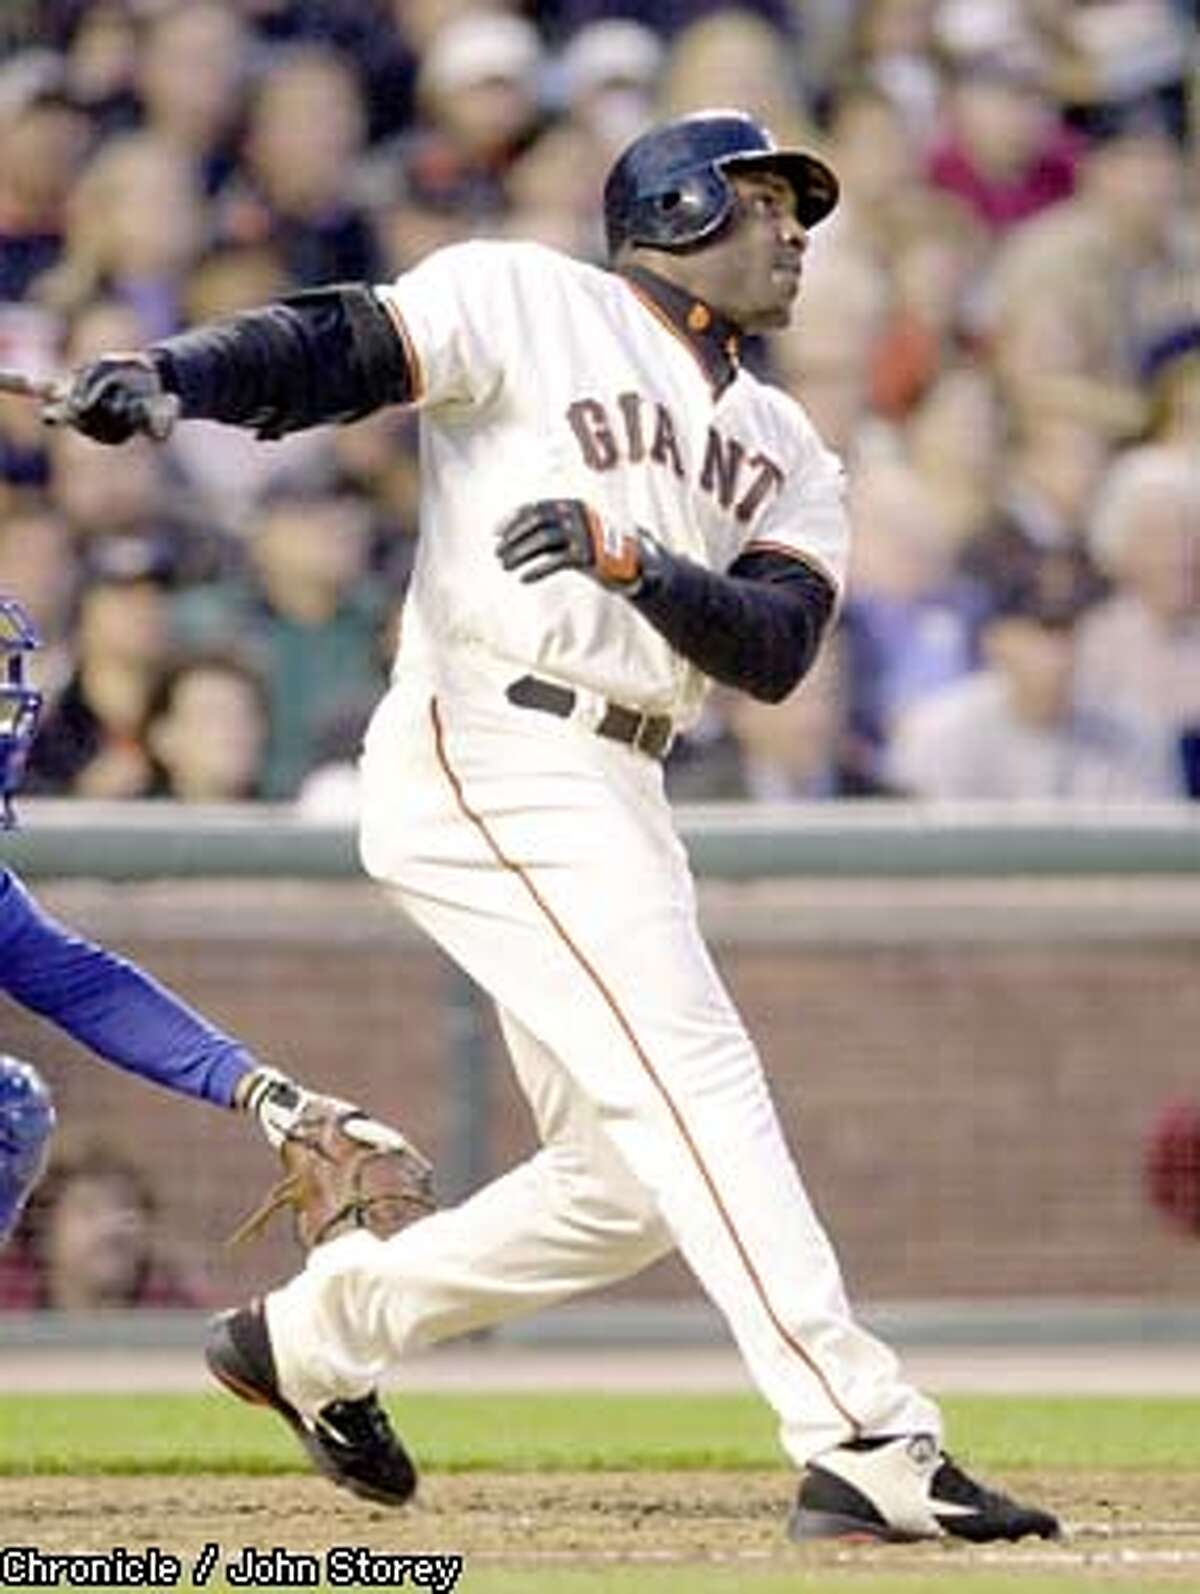 The Giants vs. the Cubs at Pac Bell Park. 4/30/03 in San Francisco. Barry Bonds hits the 1st of 2 home runs against the Cubs in the 3rd inning. JOHN STOREY / The Chronicle